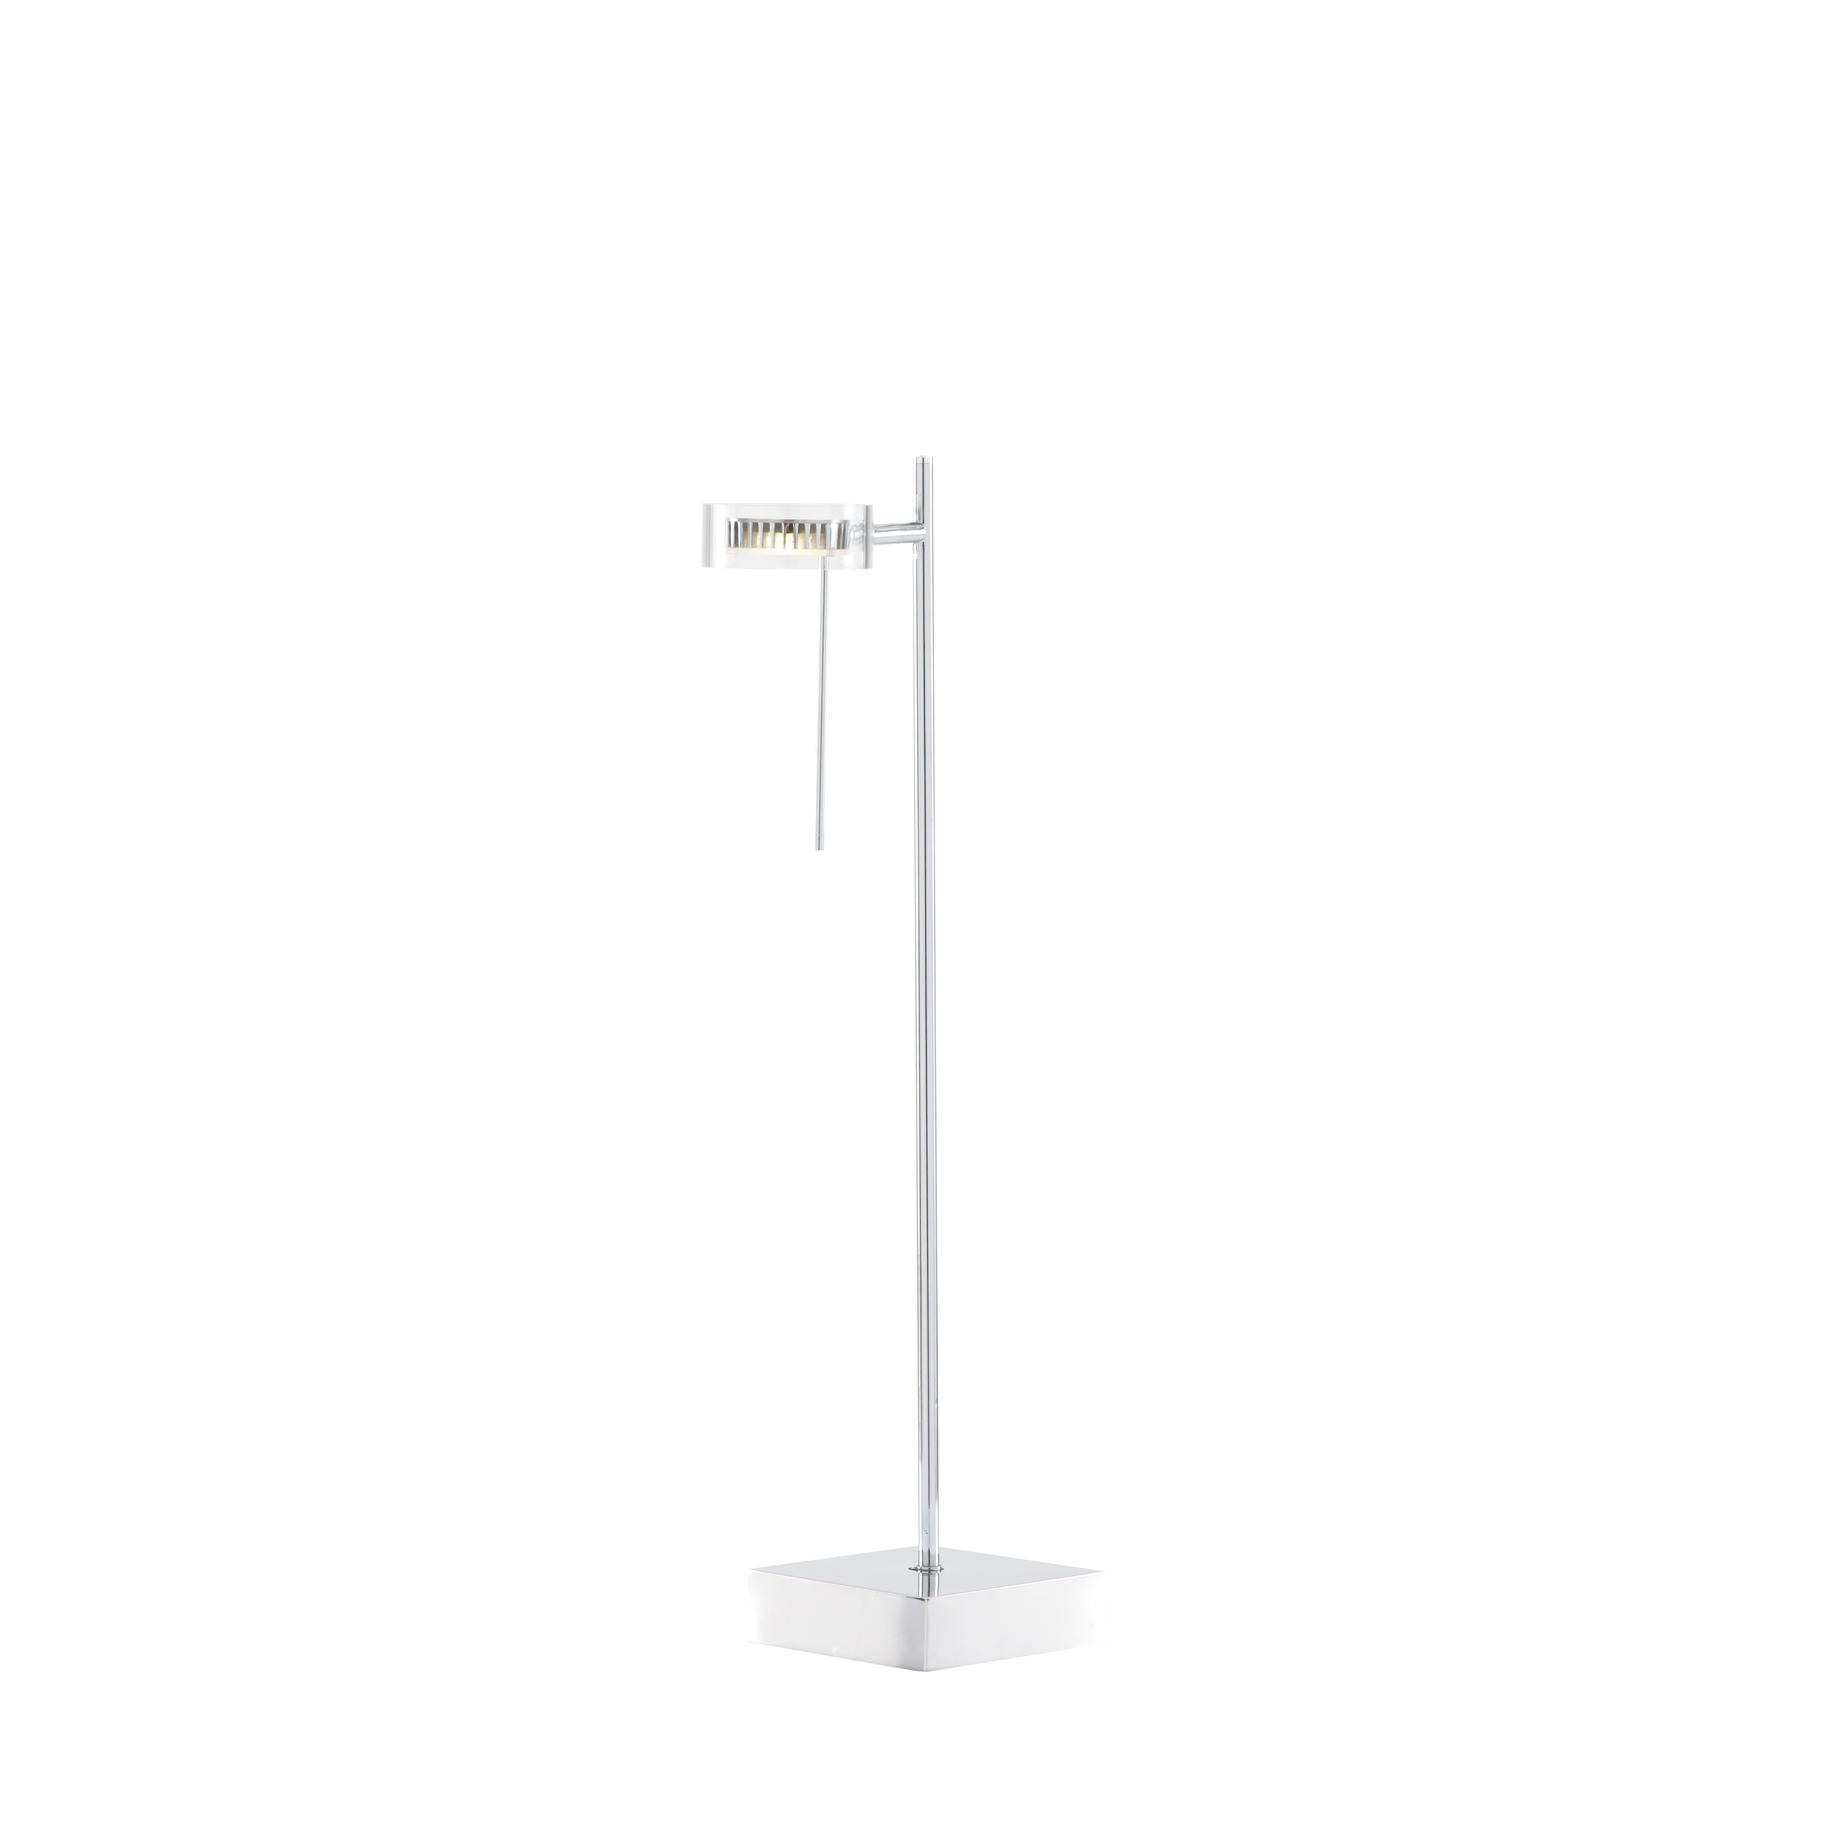 TABLE LAMP PENDING UL APPROVAL  Ligne Roset